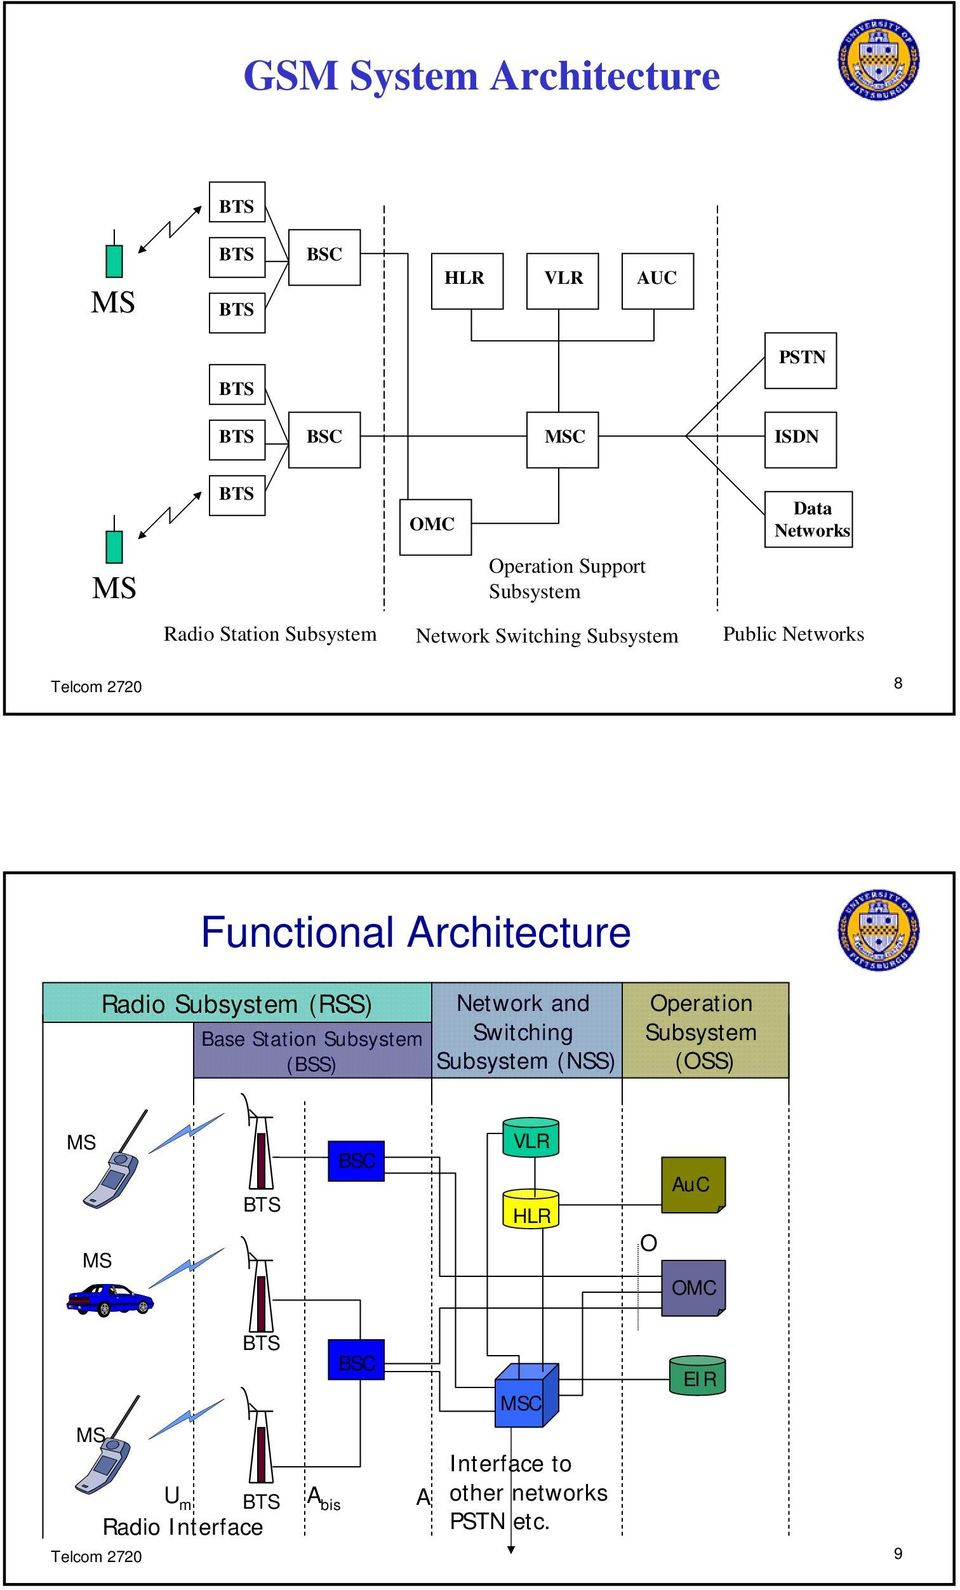 Subsystem (RSS) Base Station Subsystem (BSS) Network and Switching Subsystem (NSS) Operation Subsystem (OSS) MS